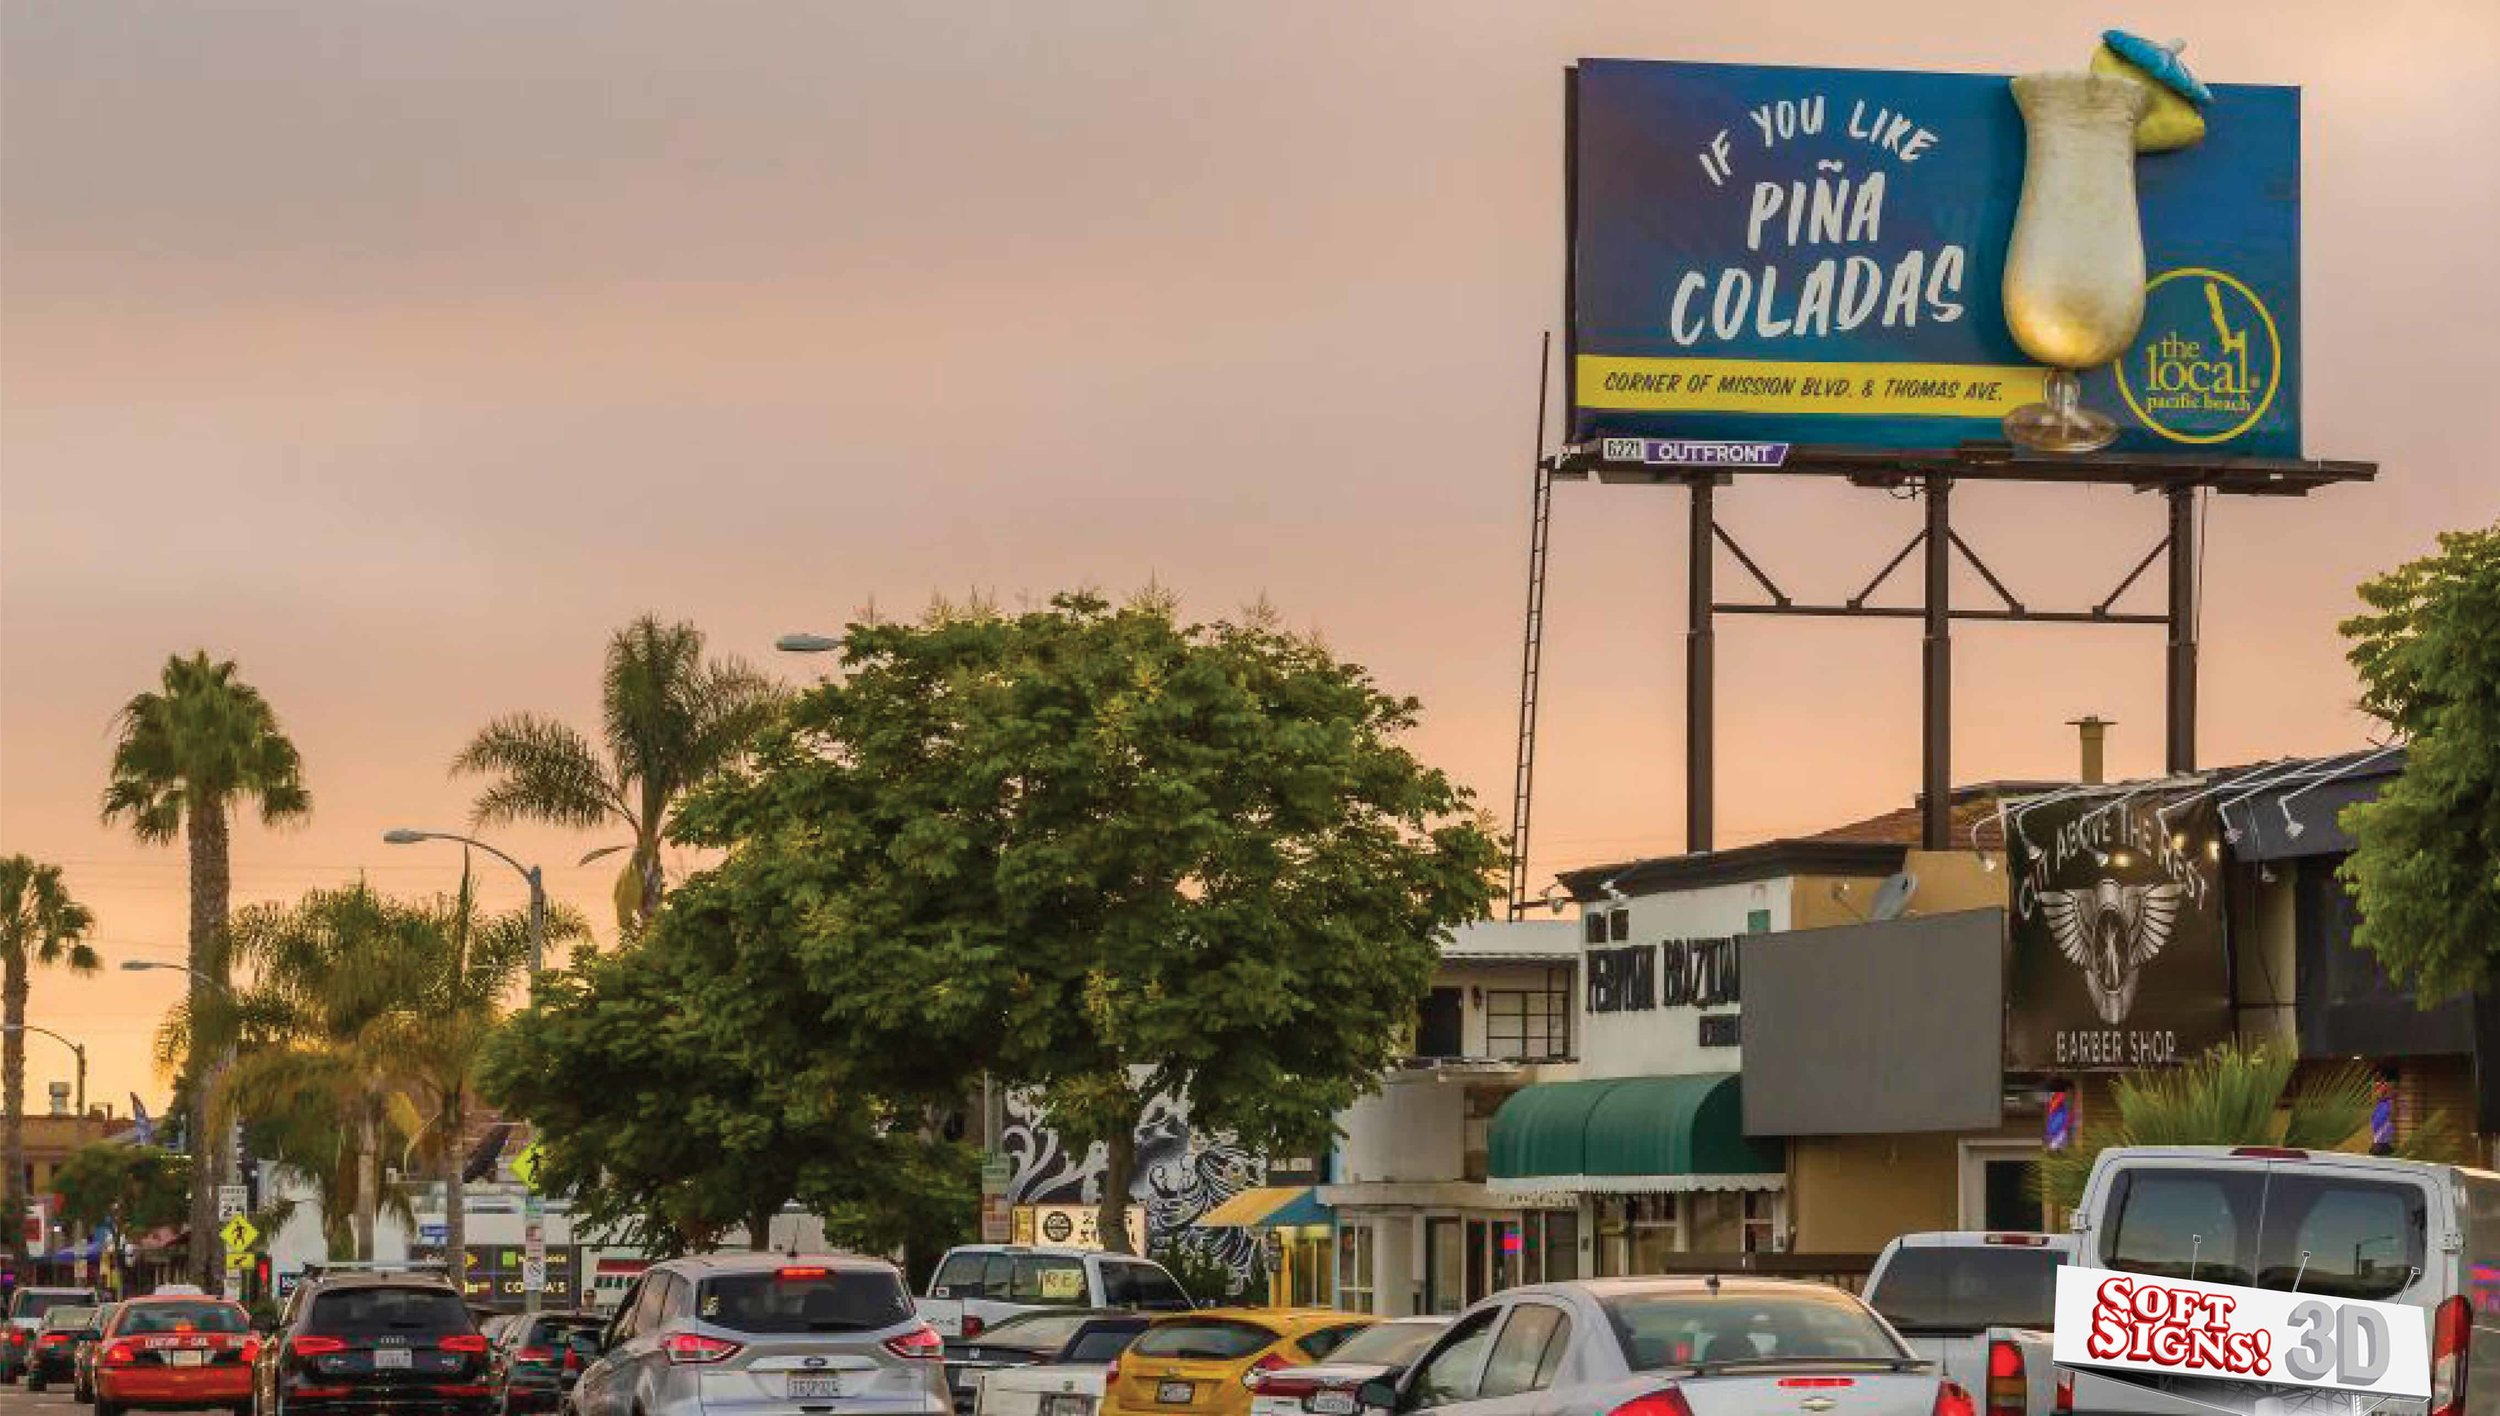 The Local PinaColada By Soft Signs 3D